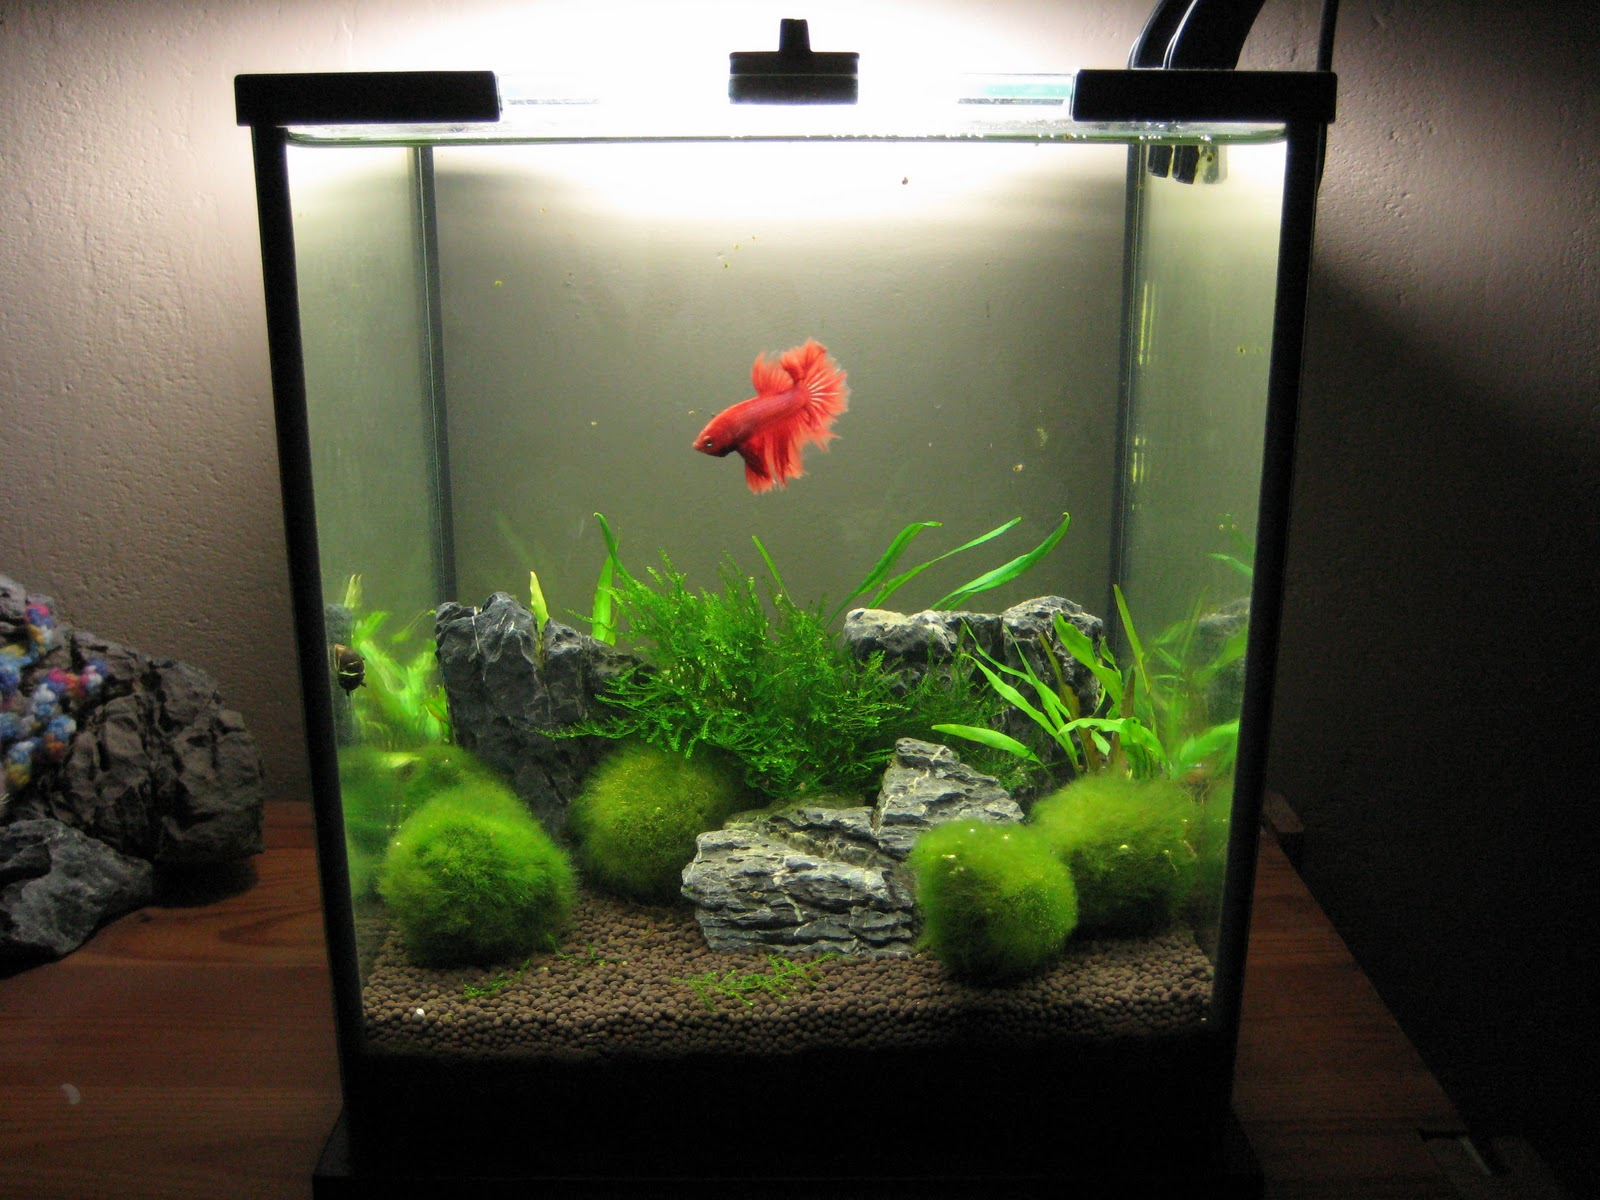 Betta fish tank setup ideas that make a statement for Freshwater fish tank setup